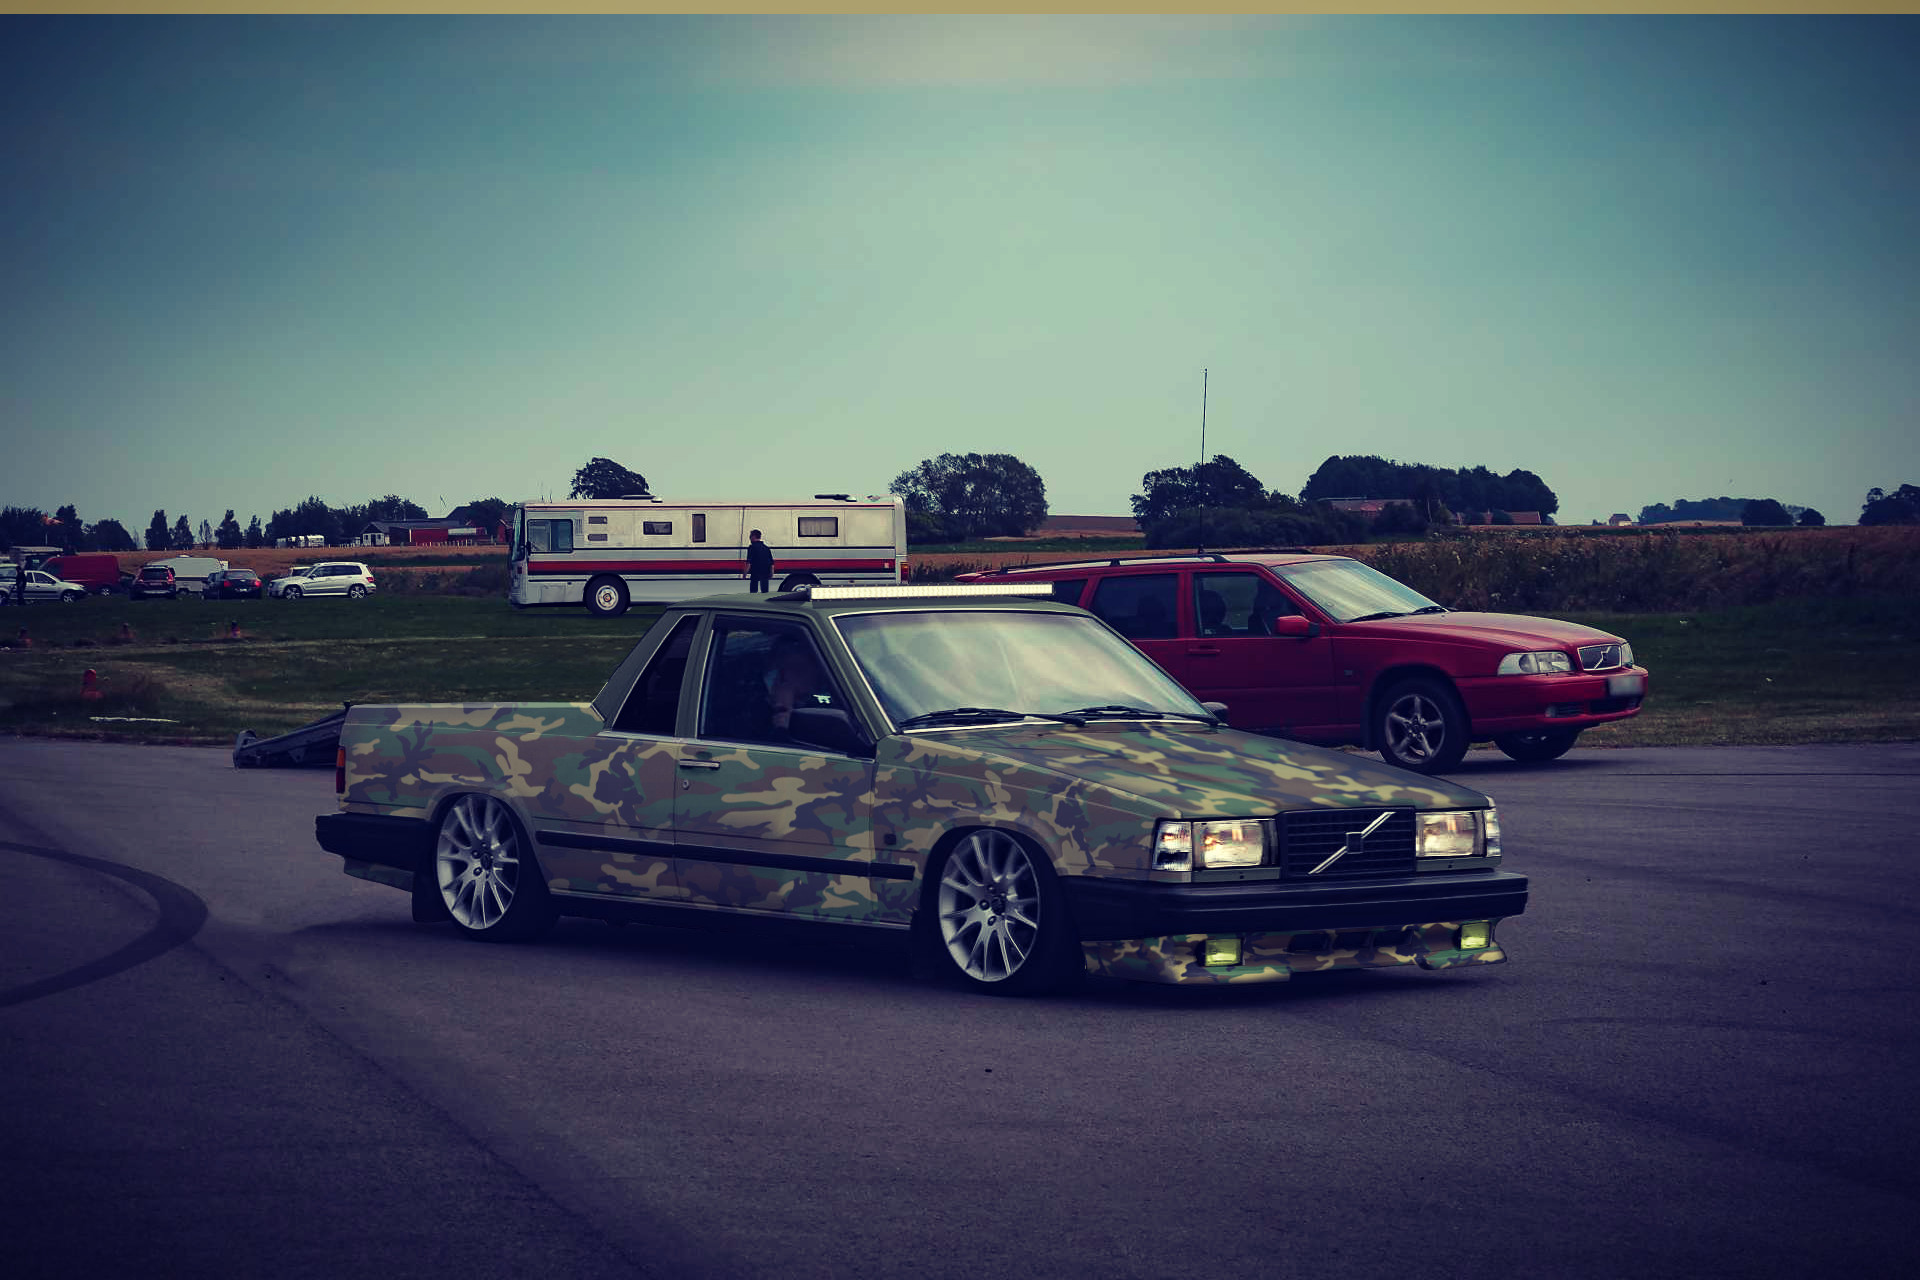 ArtStation - Cammo Volvo 744 // A-traktor //, L.C CUSTOMS